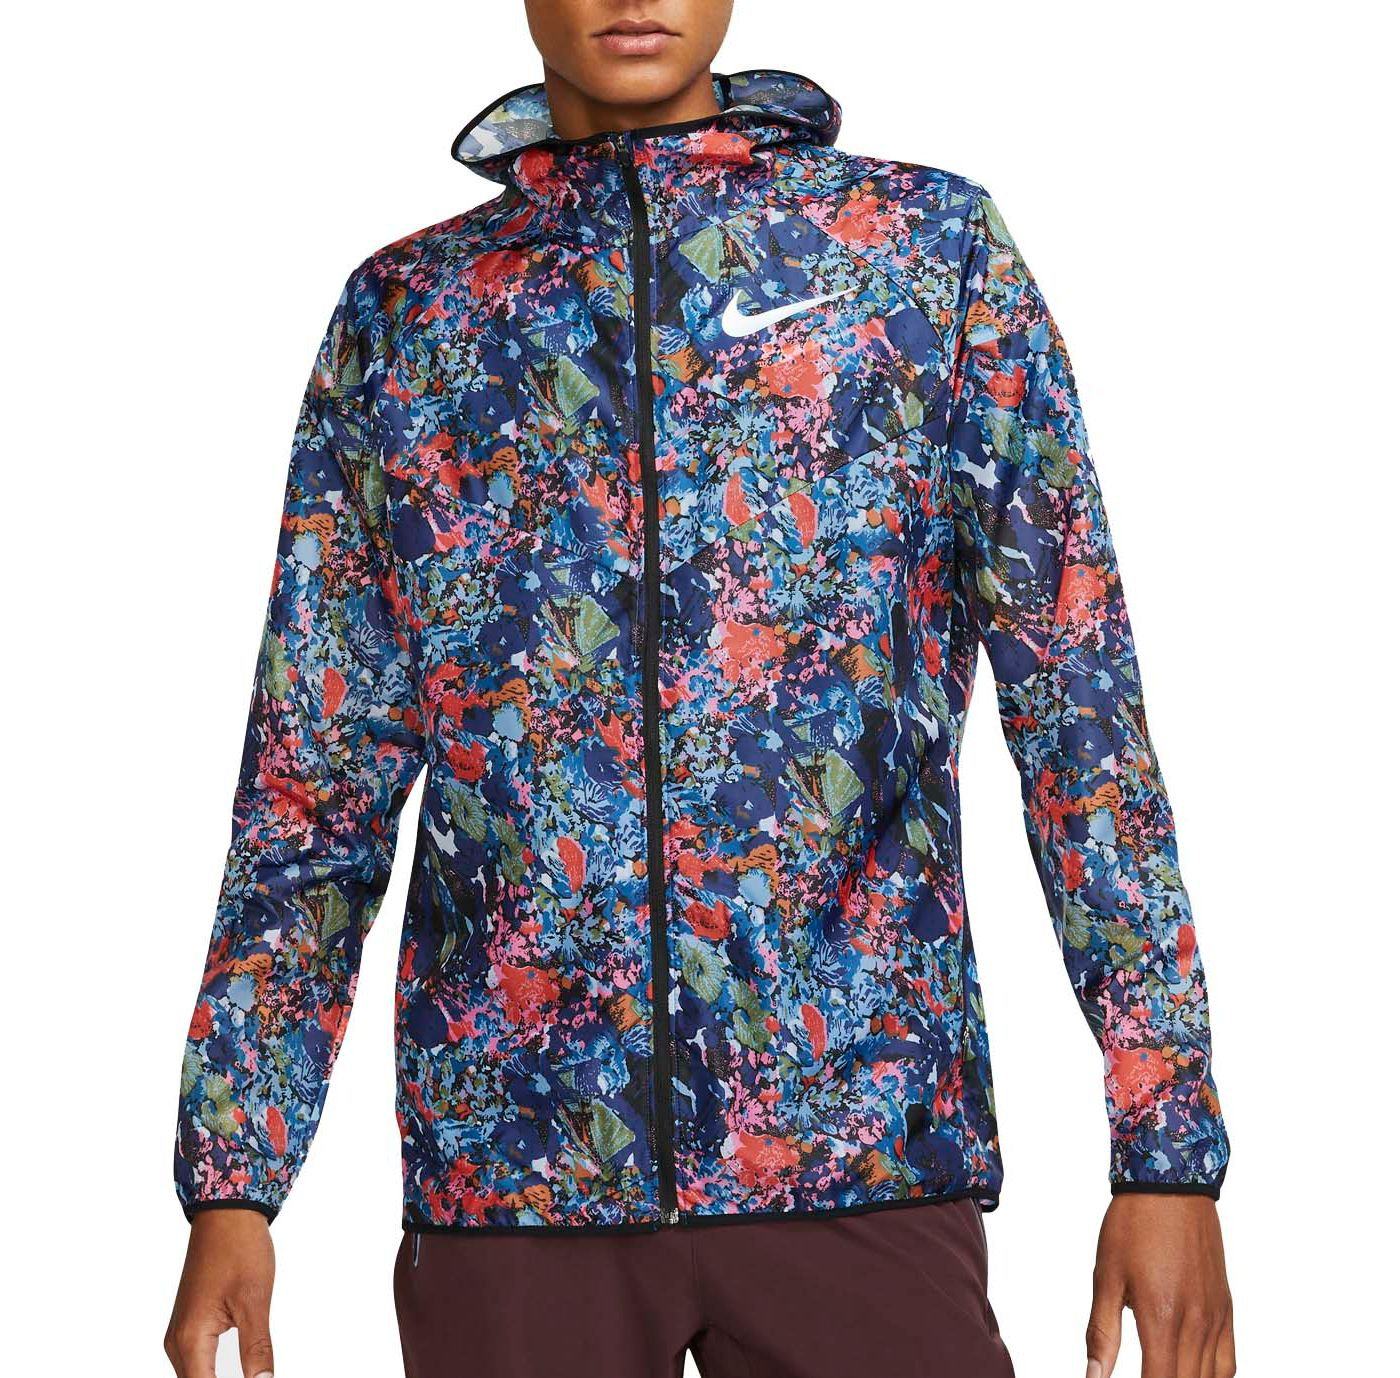 Nike Men's Printed Windrunner Jacket